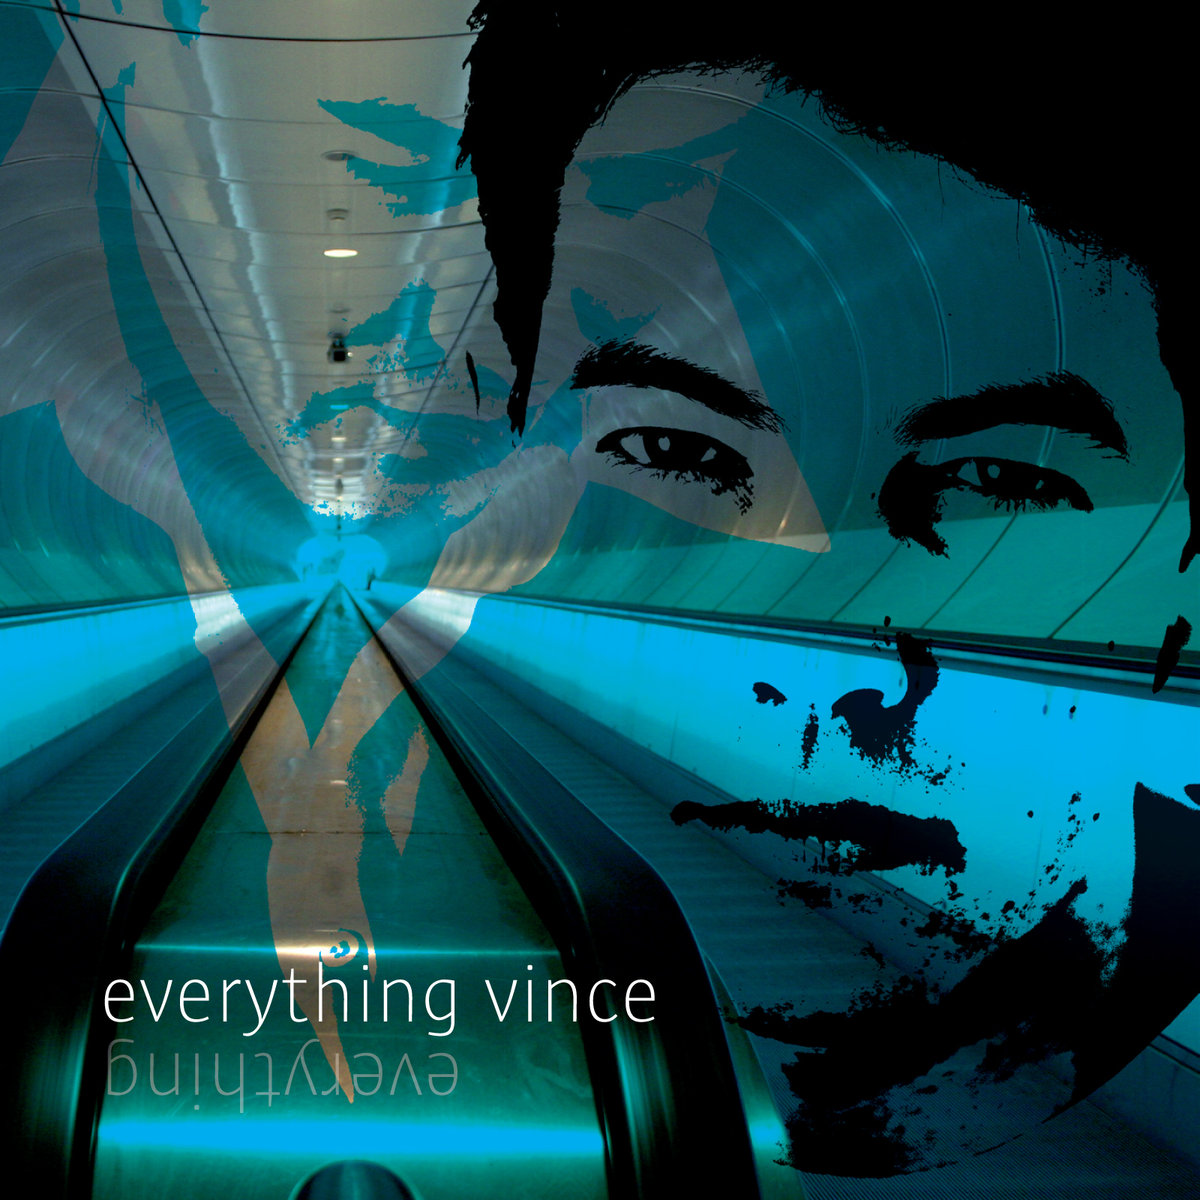 Vince - Night @ 'Everything' album (pop, pop punk)